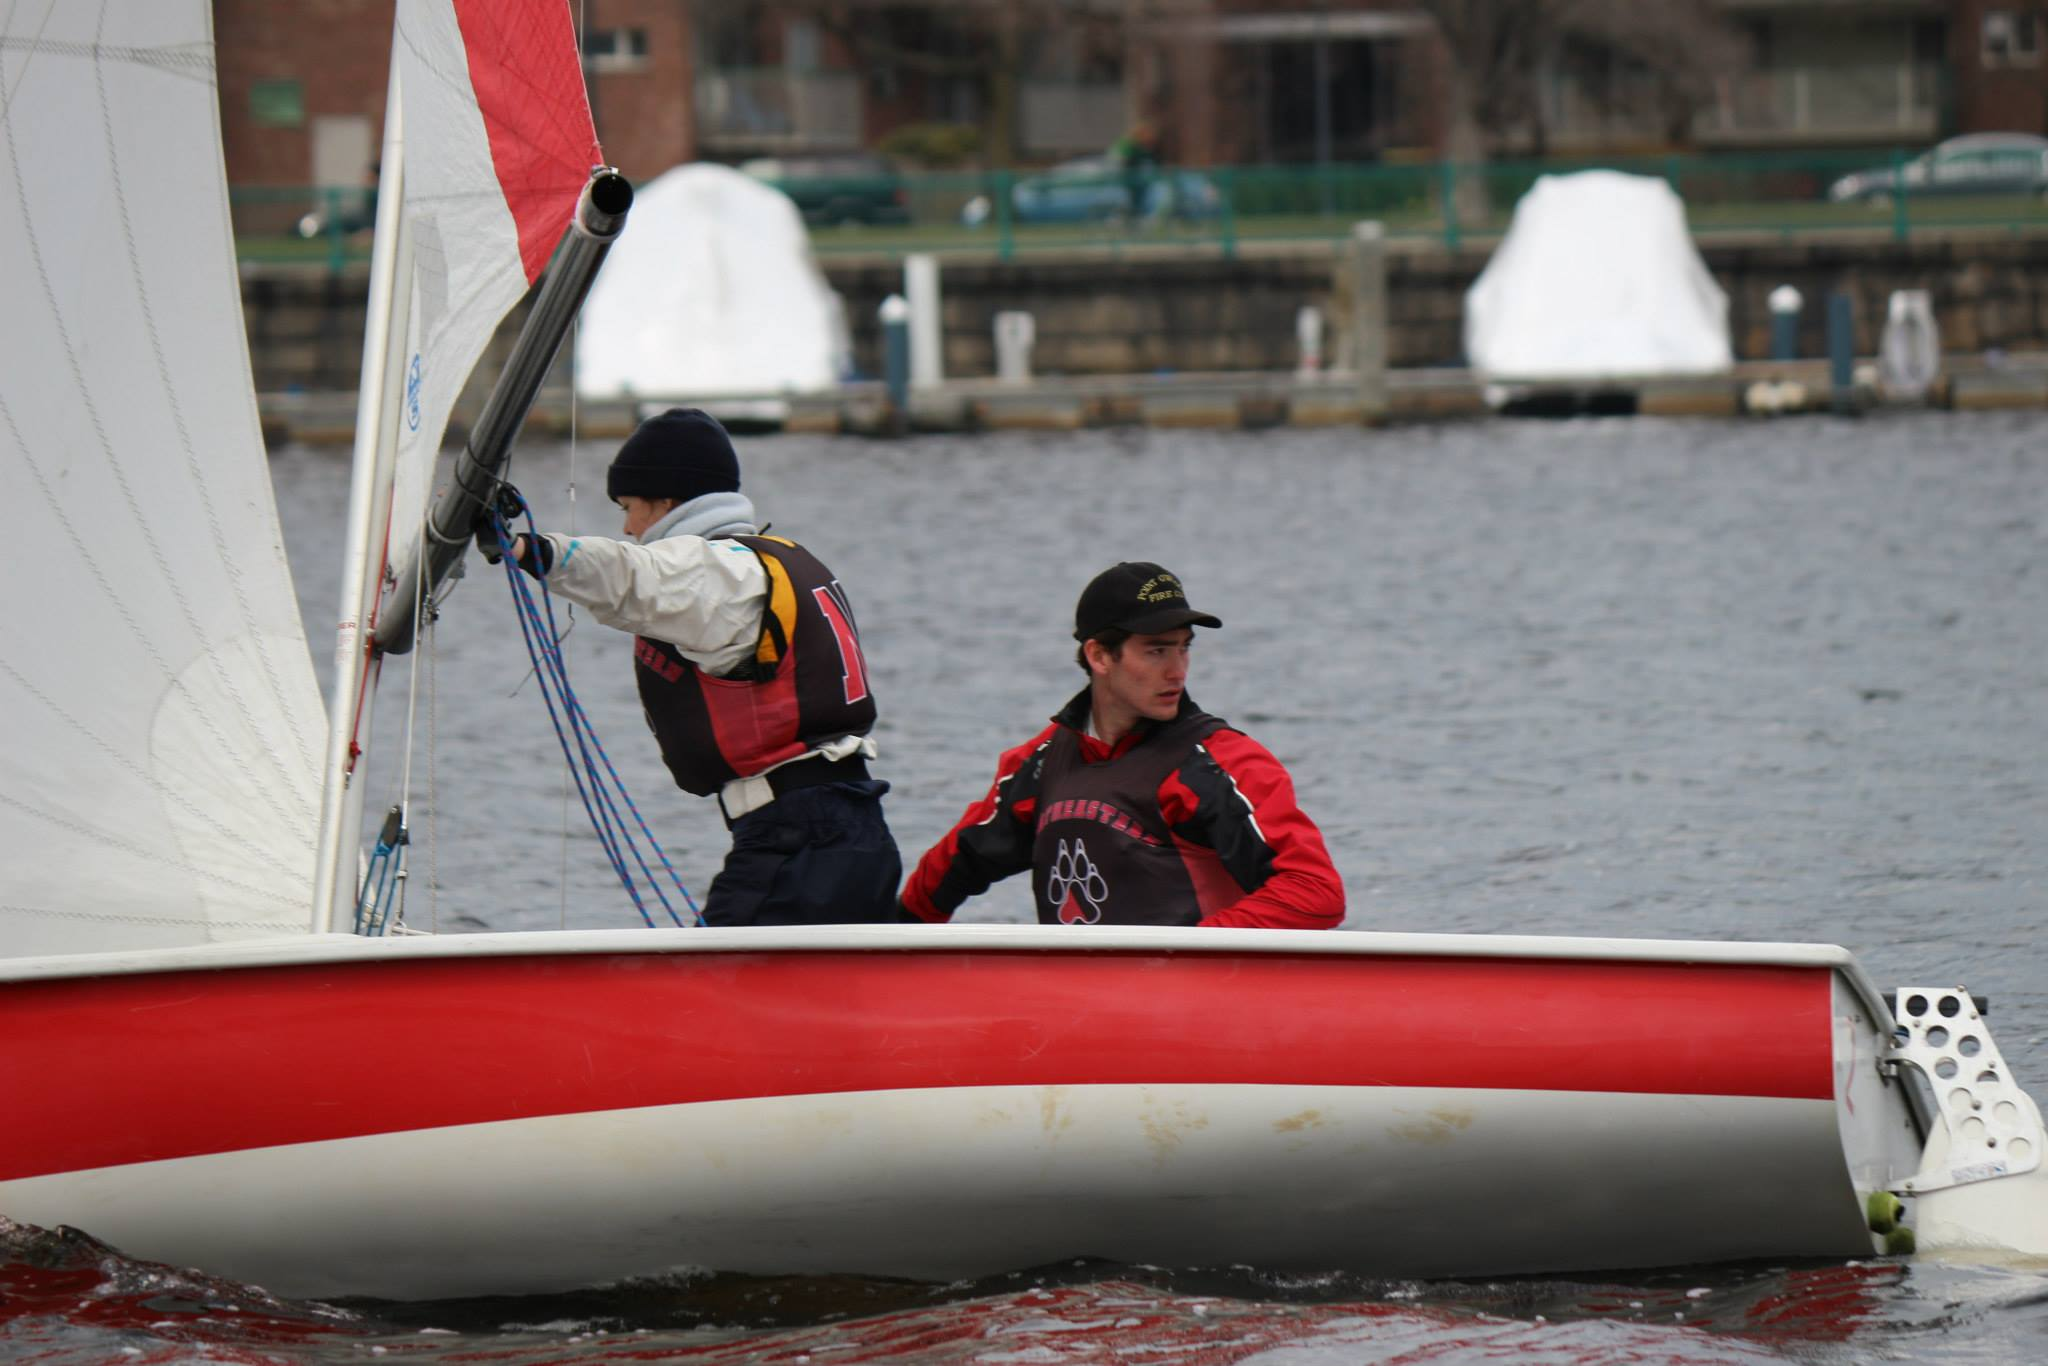 Boston Dinghy Cup, Spring 2014